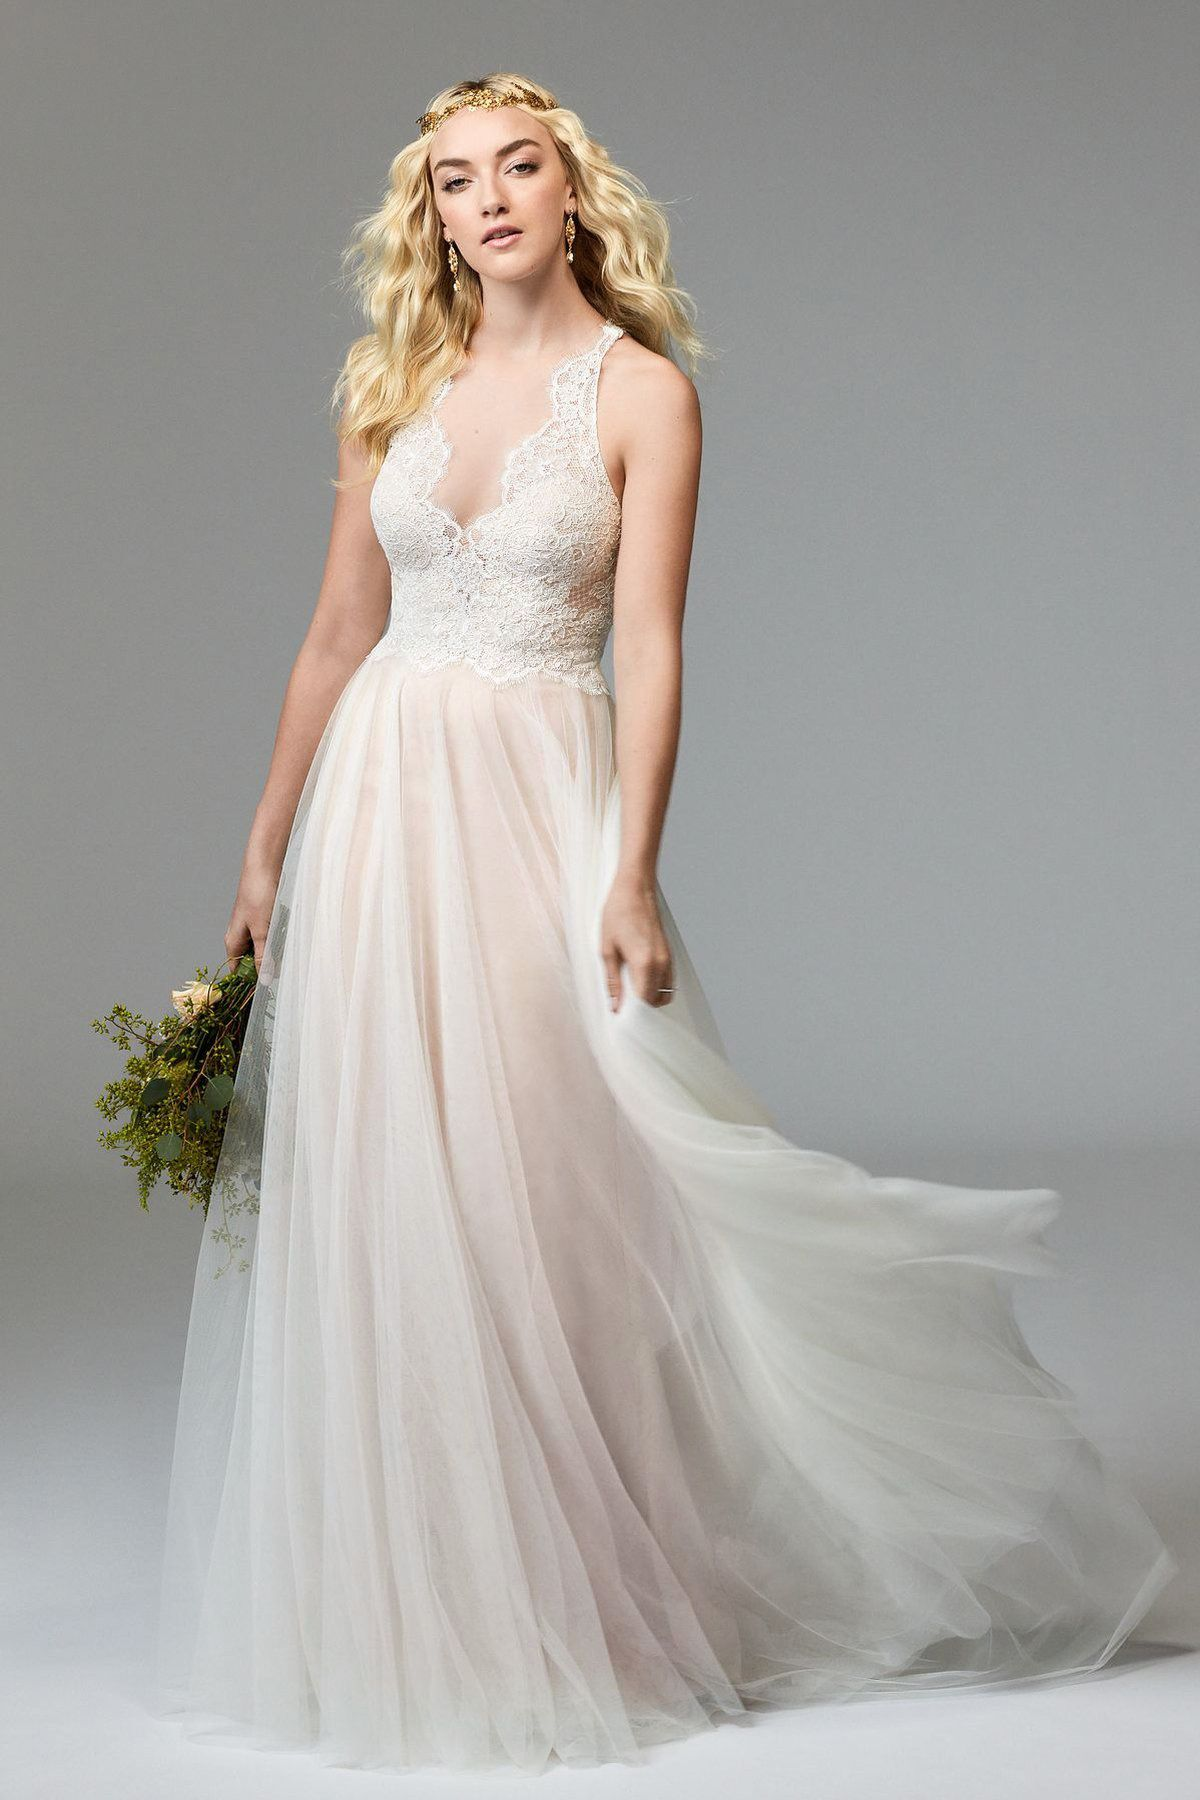 Willowby wedding dresses  Vira   Brides  Willowby by Watters  Weddings  Pinterest